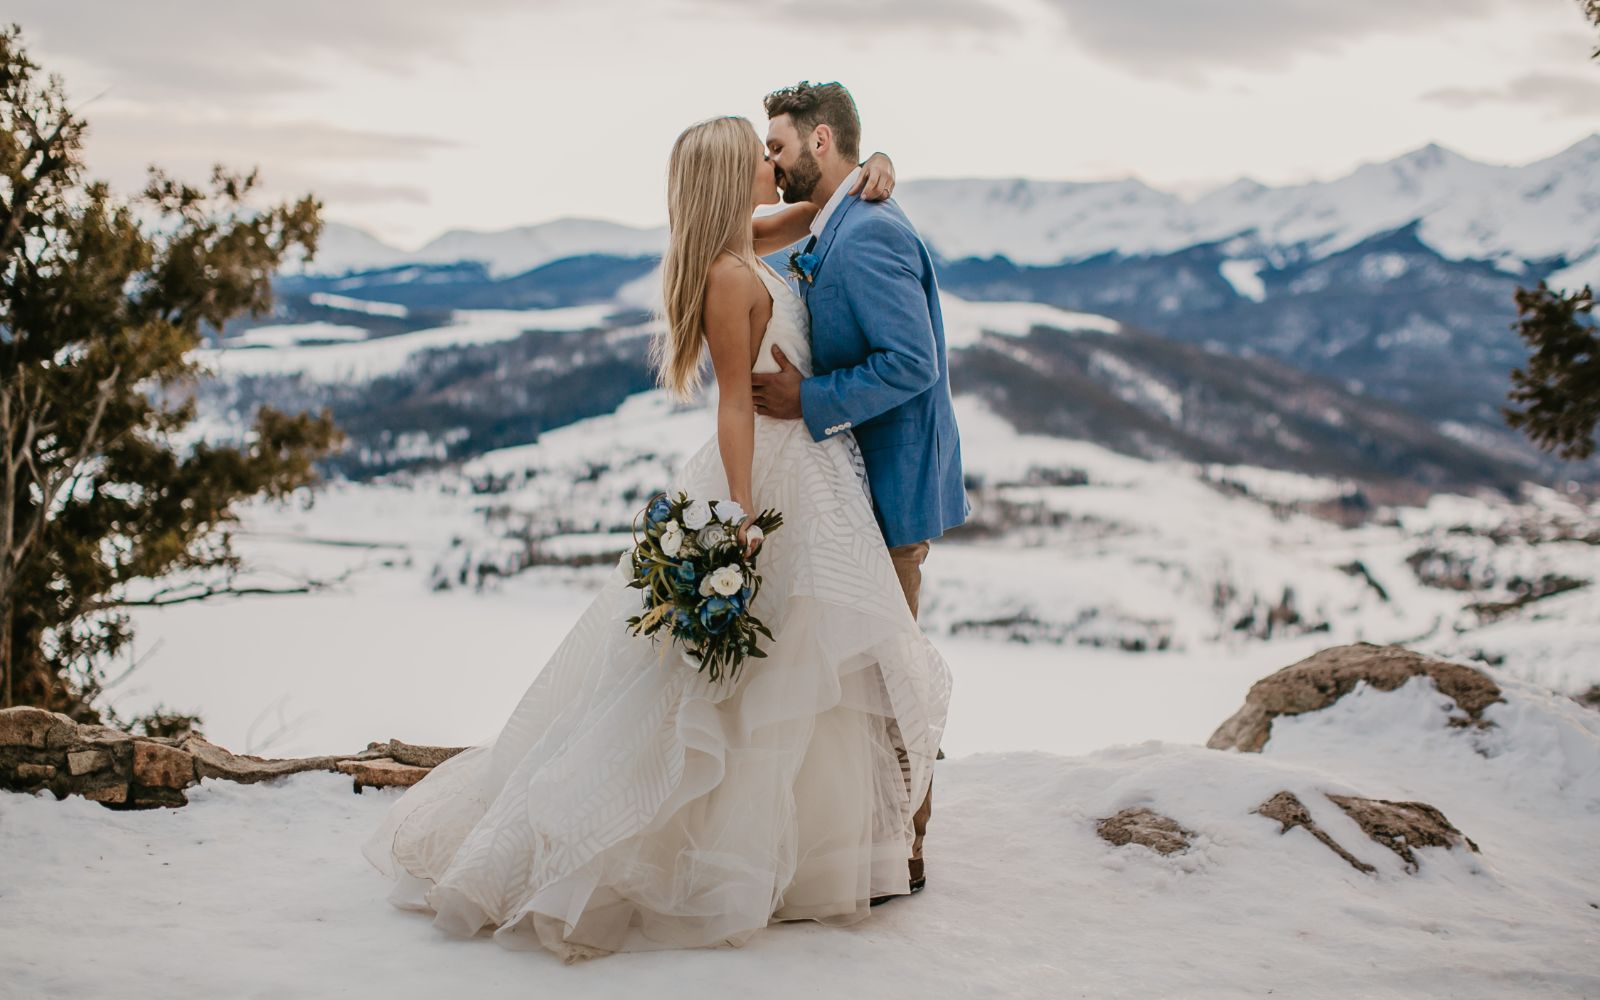 Bride and Groom kissing in front of the snowy Rocky Mountains. The bride is holding a blue and white bridal bouquet with lots of greenery.